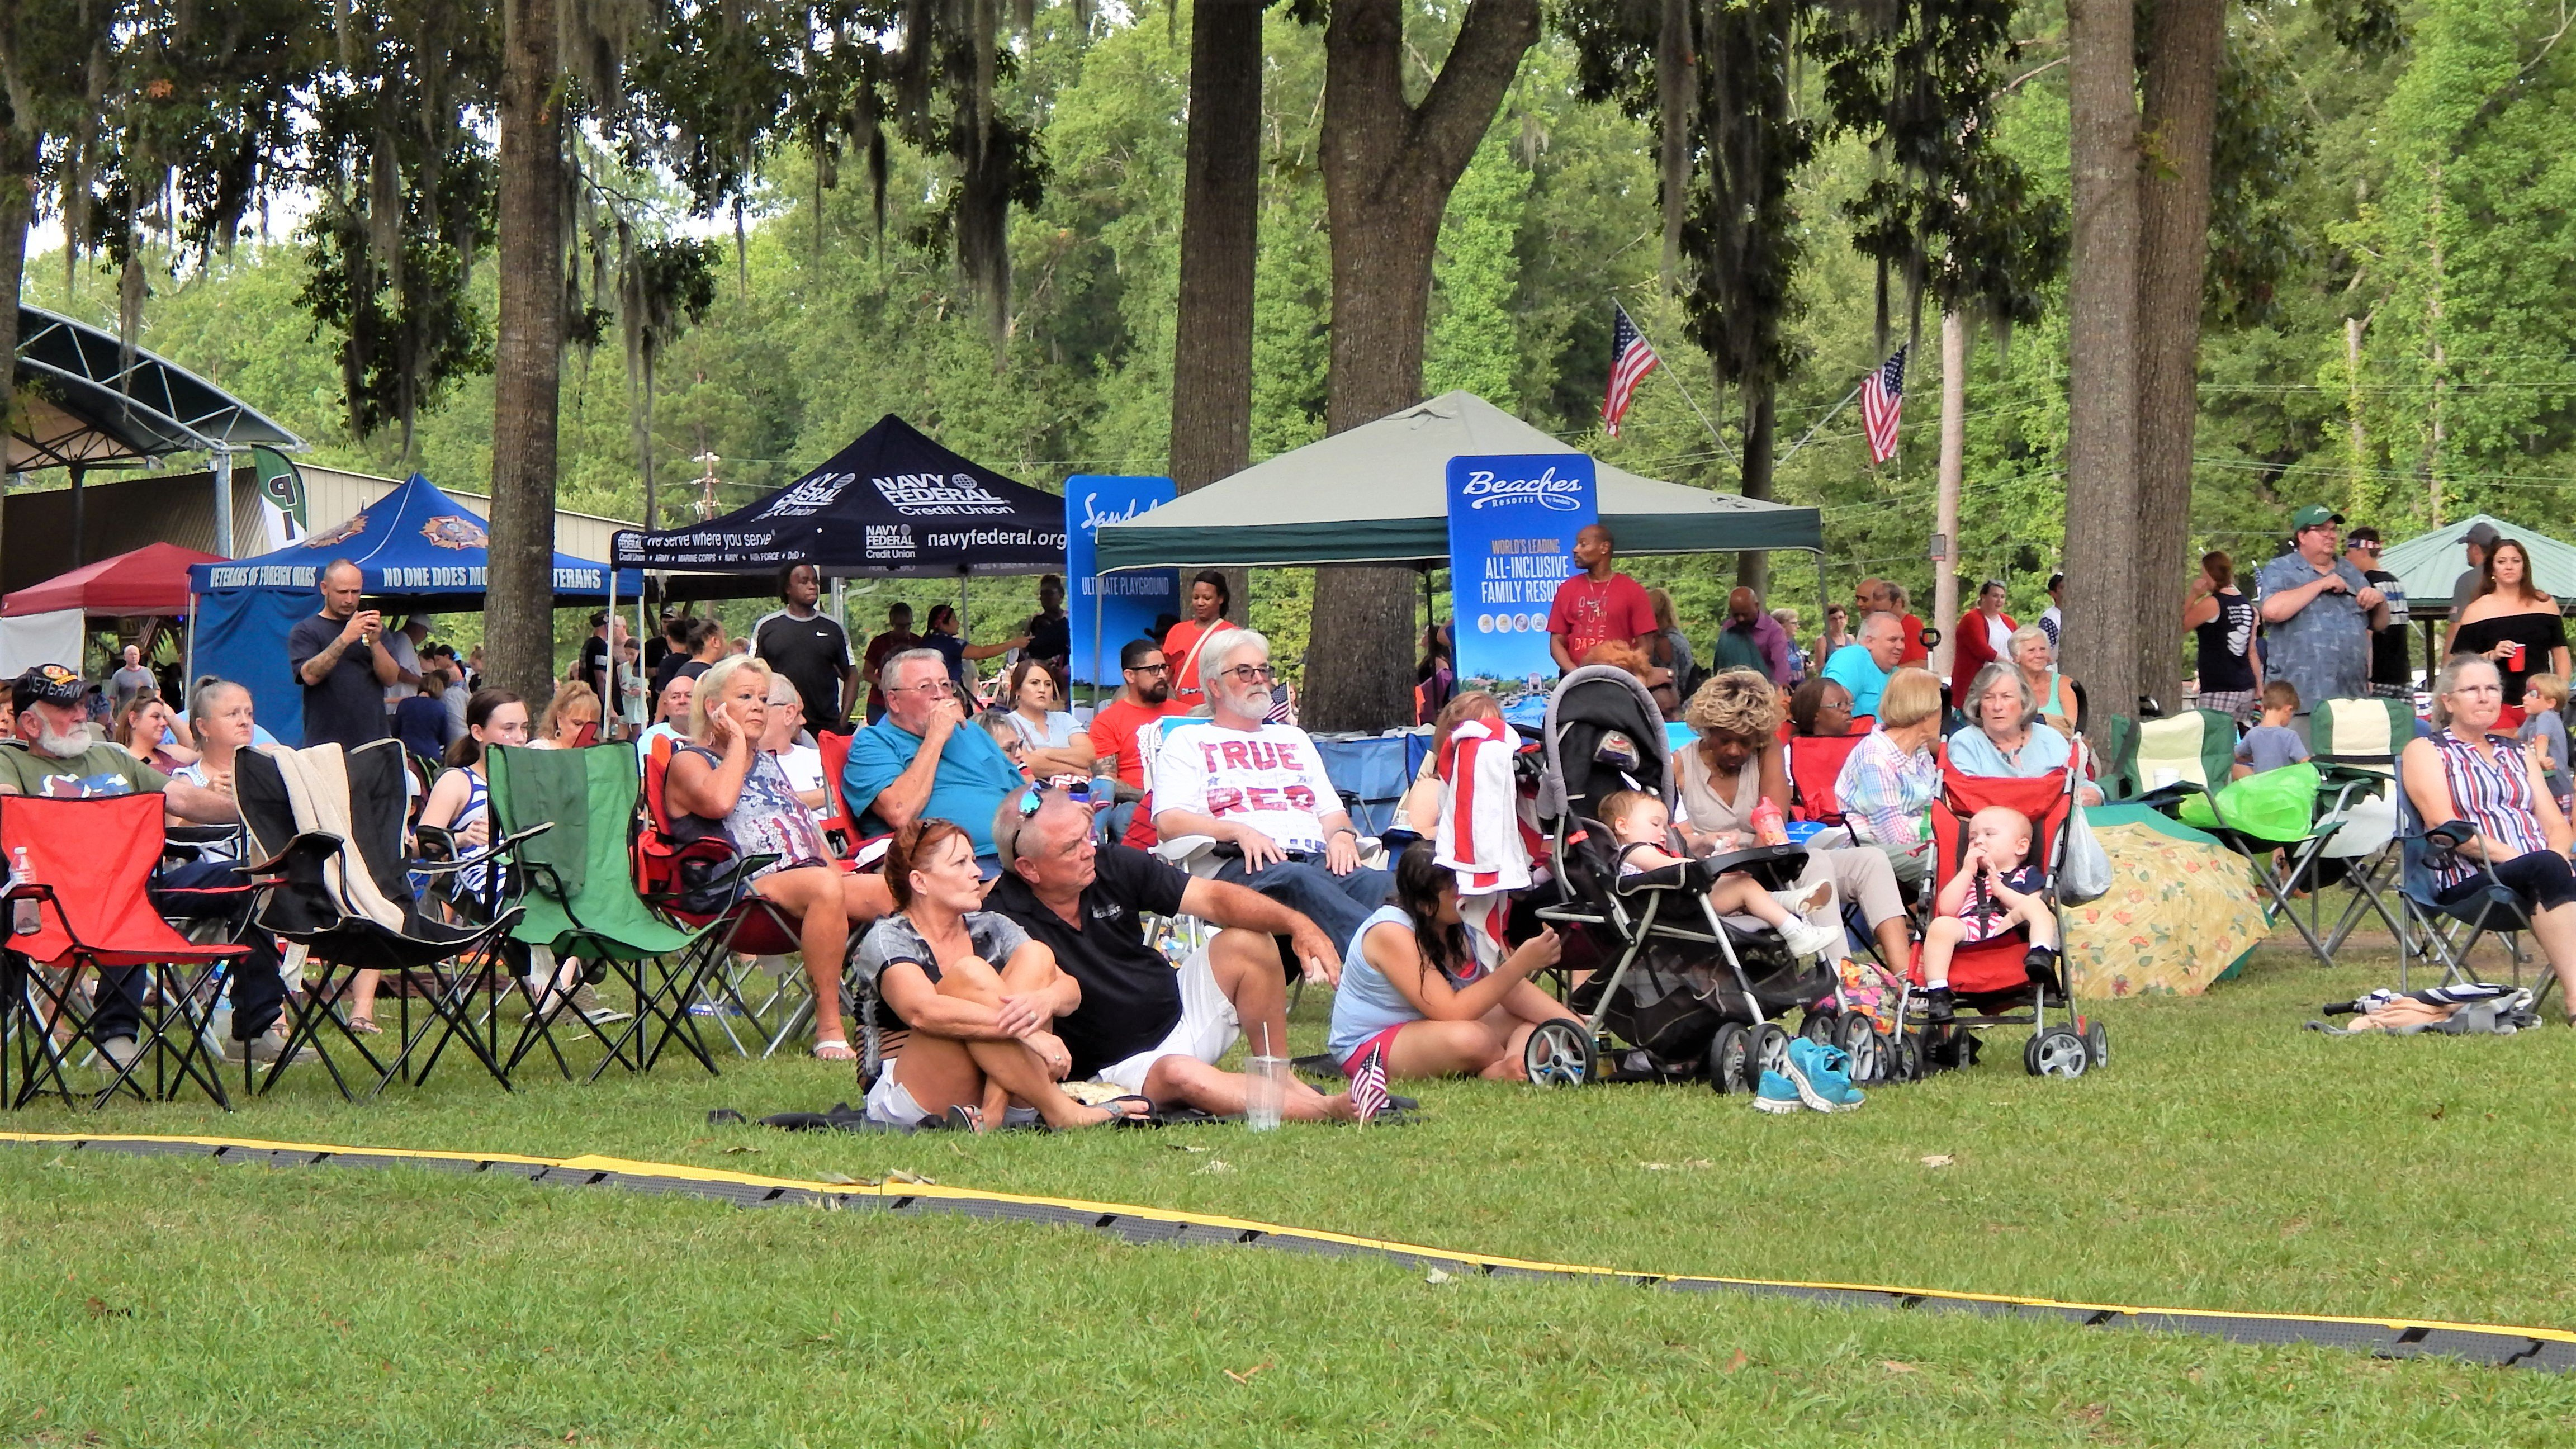 Crowds brought their blankets and lawn chairs to enjoy the music by The Tams. Photo by Mark Swendra.